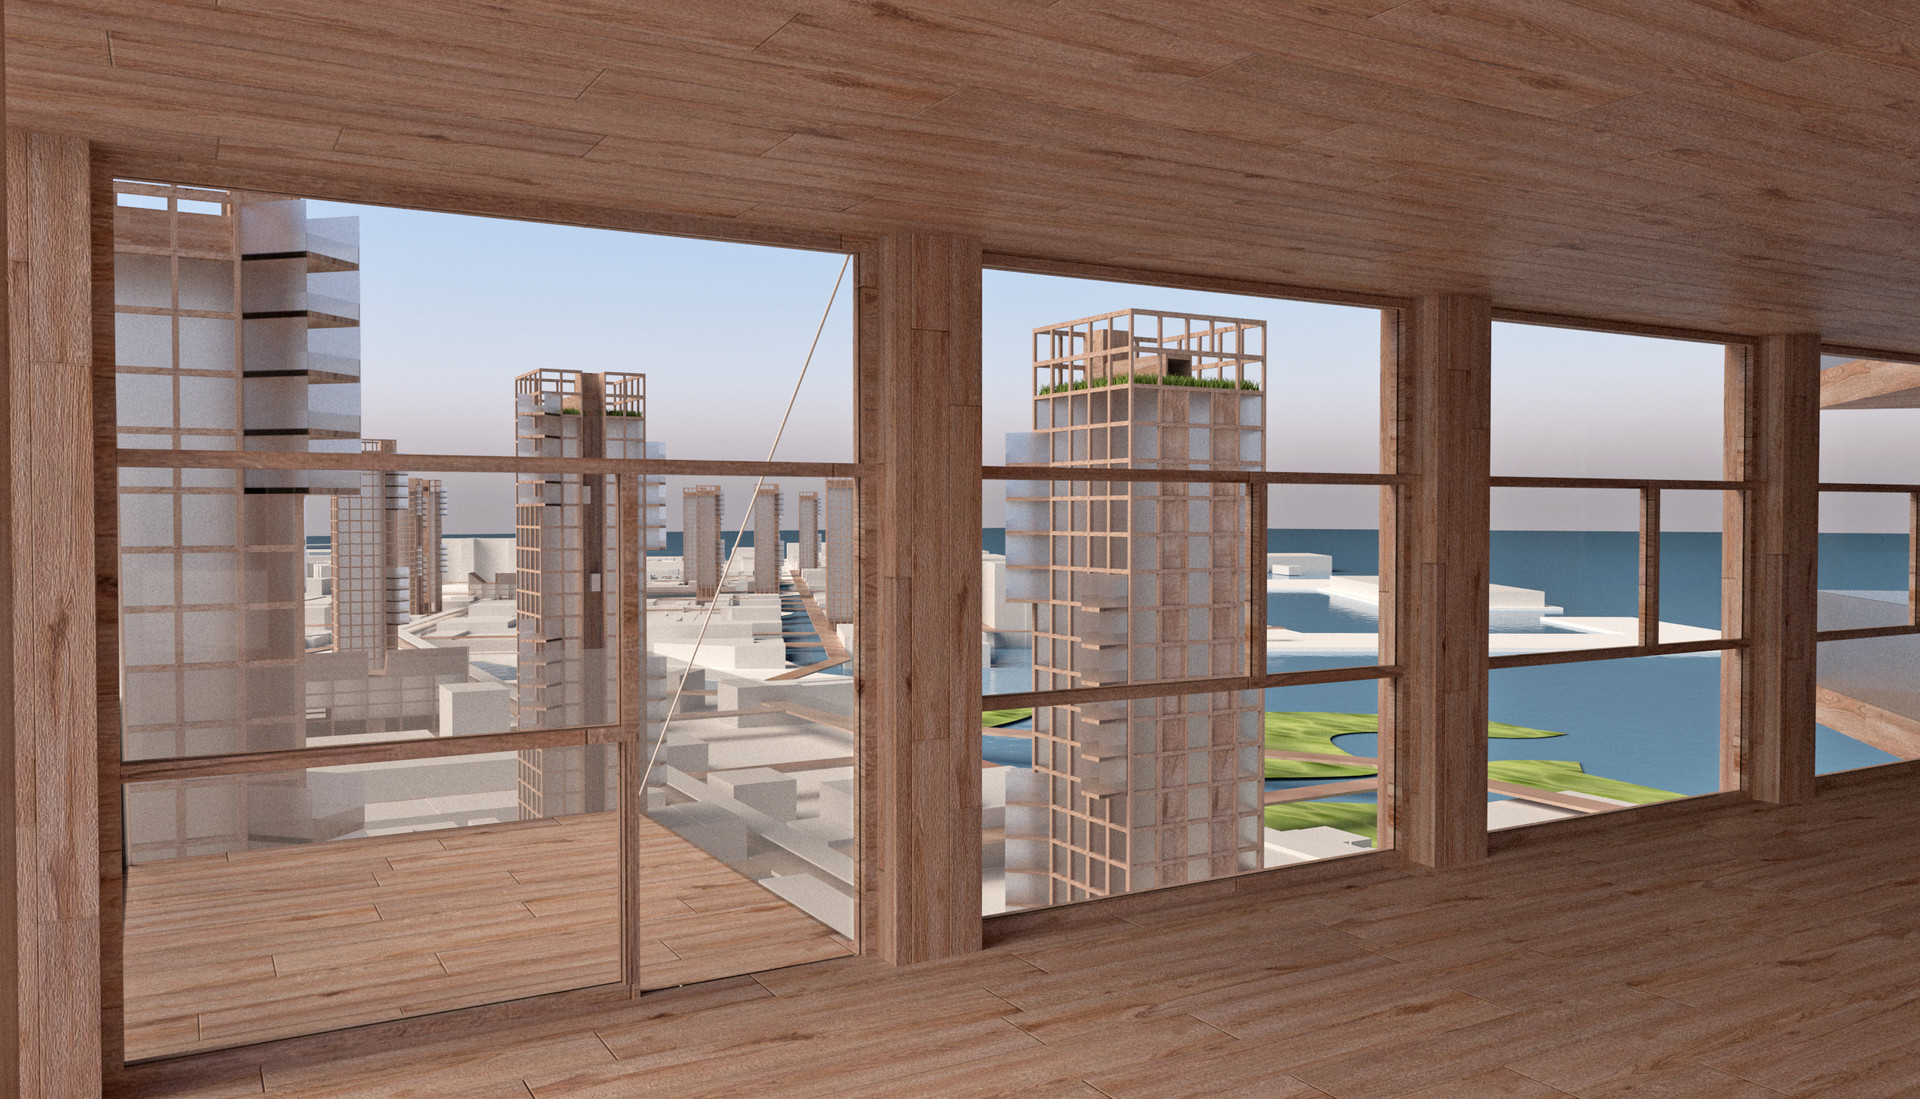 All units have corner exposures, harbor views and cross ventilation.  Open air elevators + common roof gardens contribute to healthy environment.